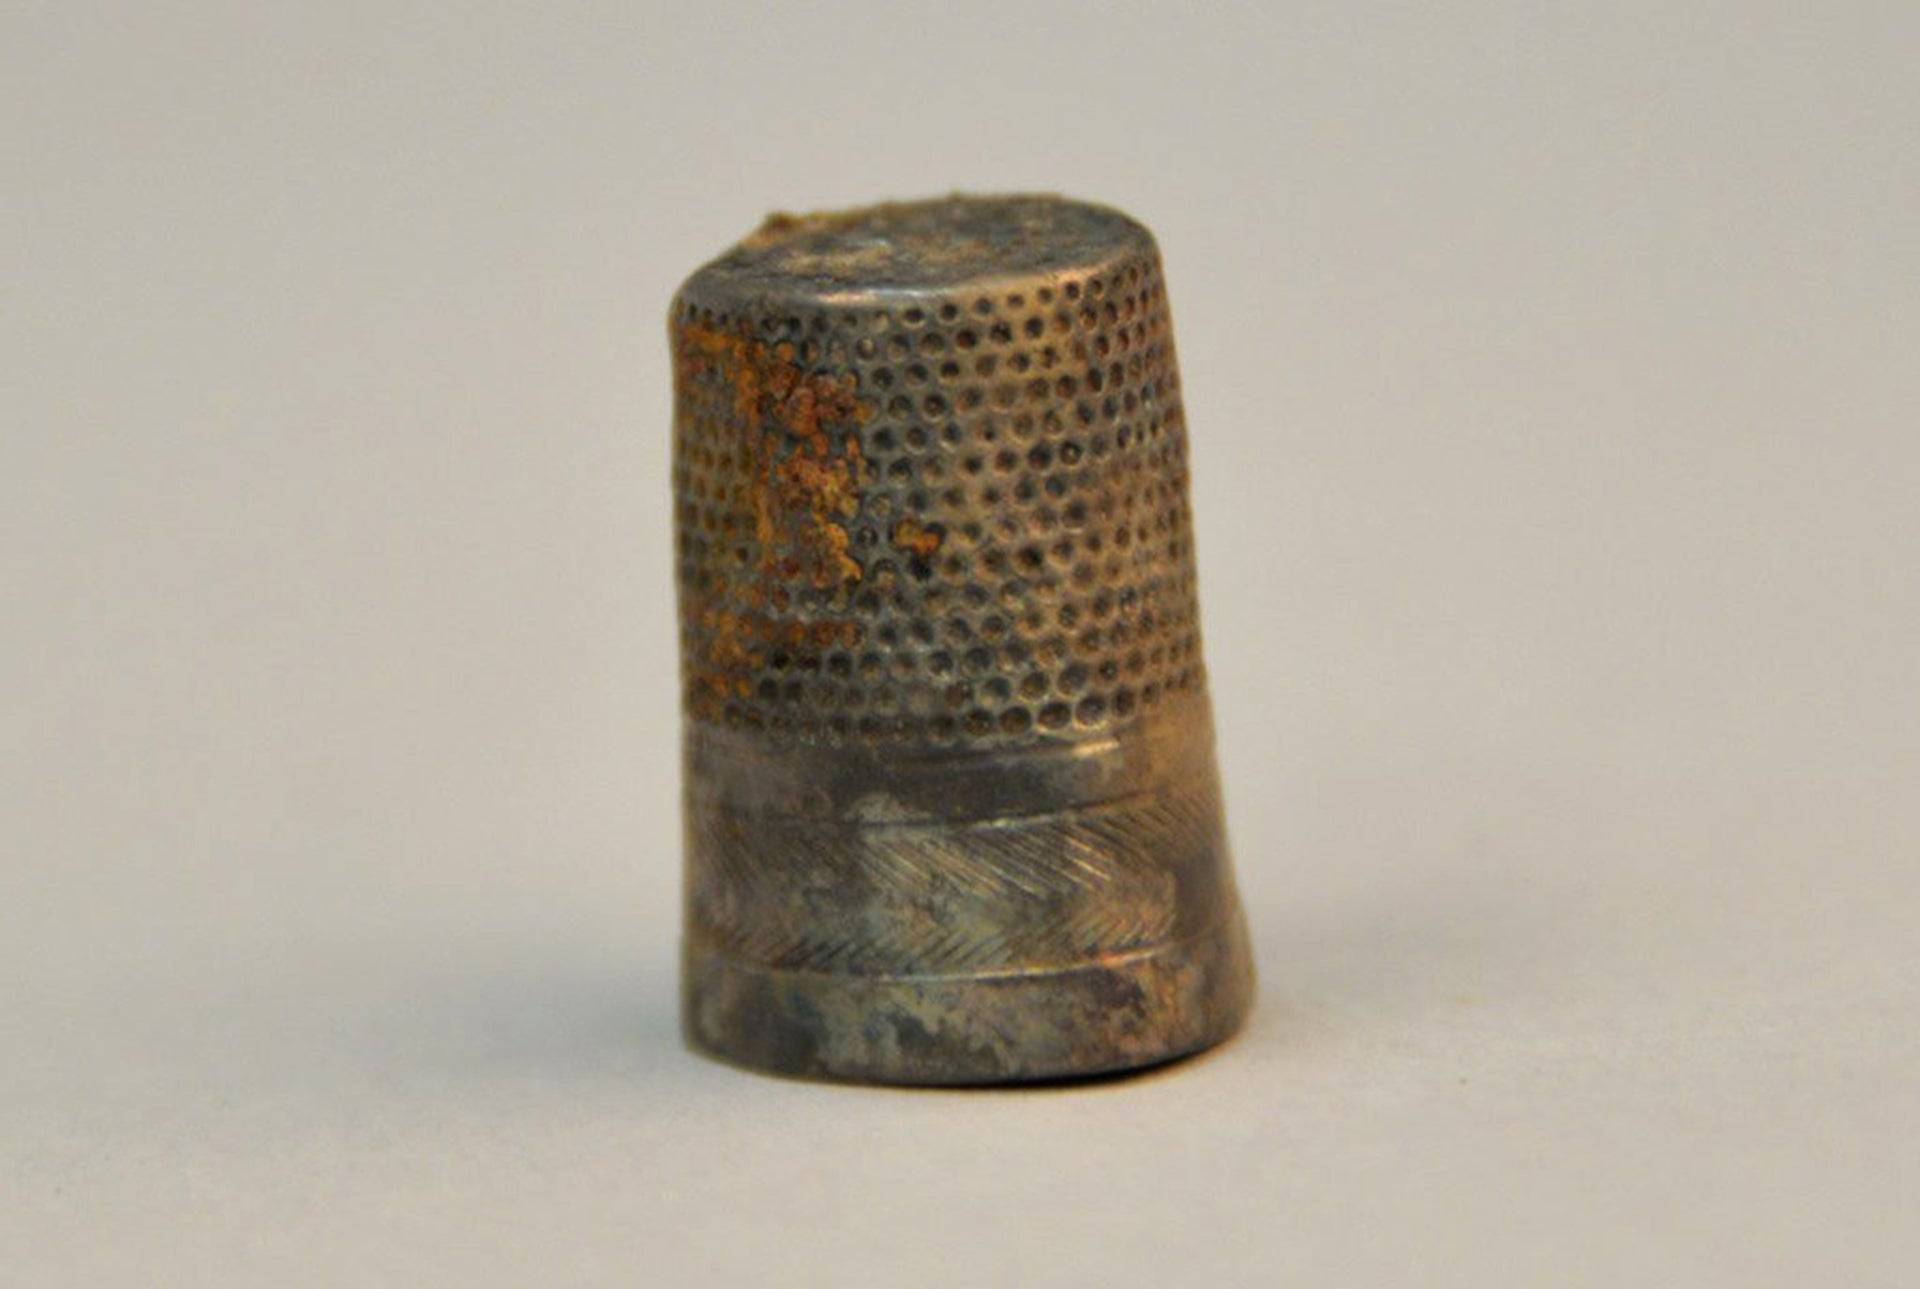 A thimble was discovered among the recently revealed personal items from the Auschwitz death camp.